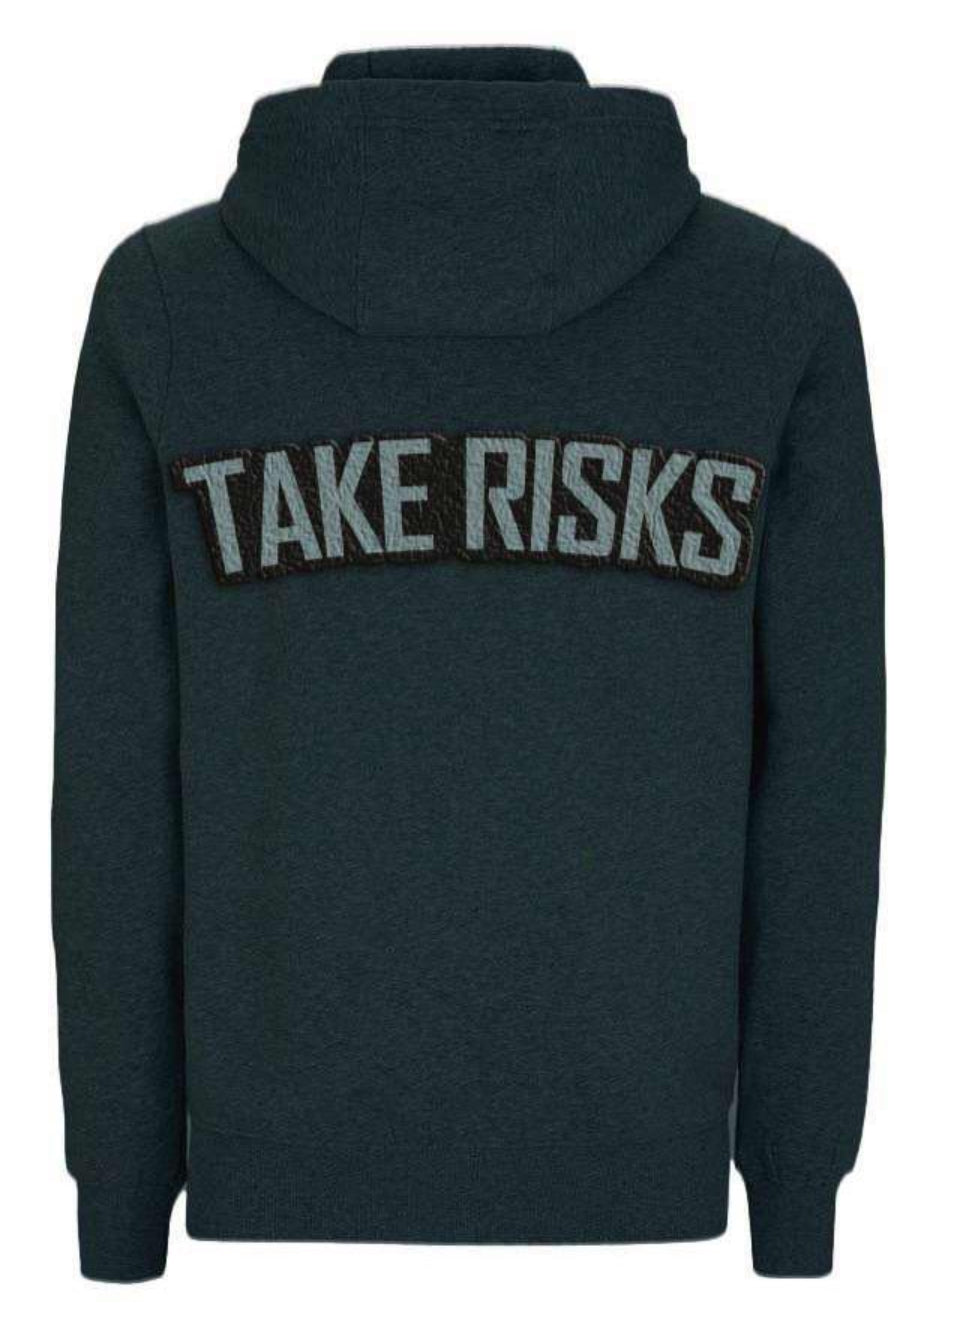 TAKE RISKS - STONE GREYSCALE HOODIE